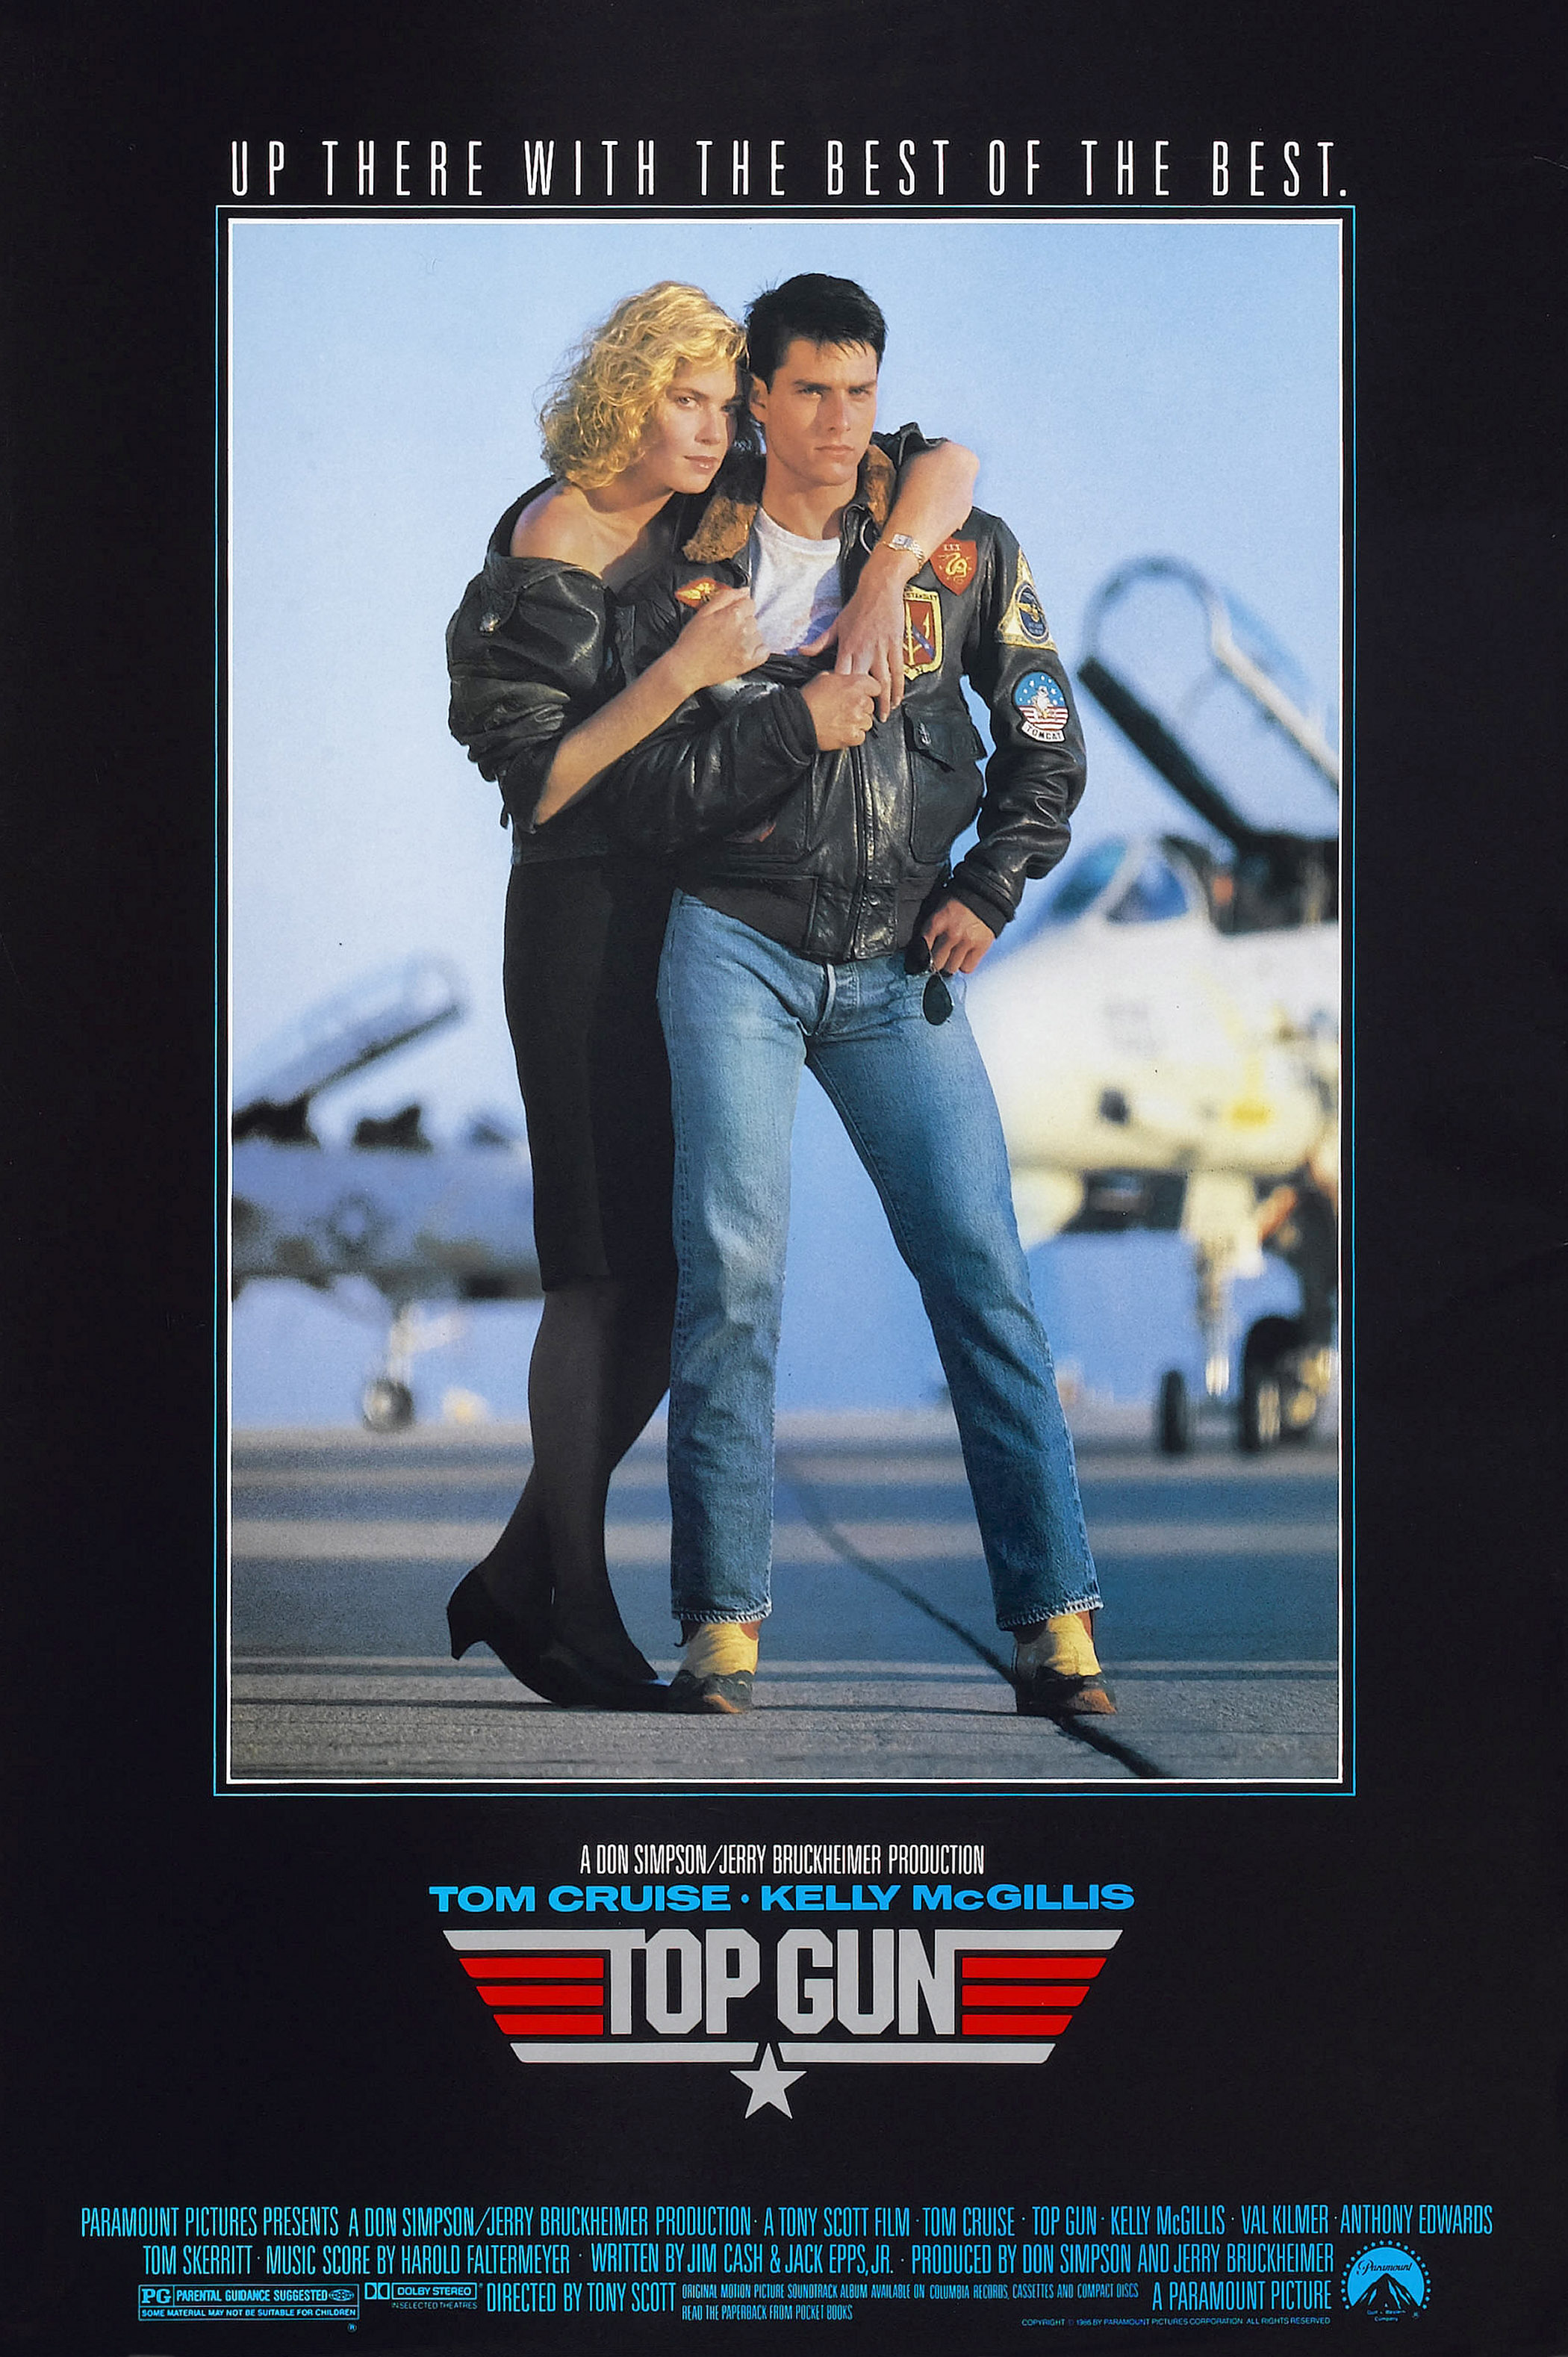 Top gun movie posters for sale